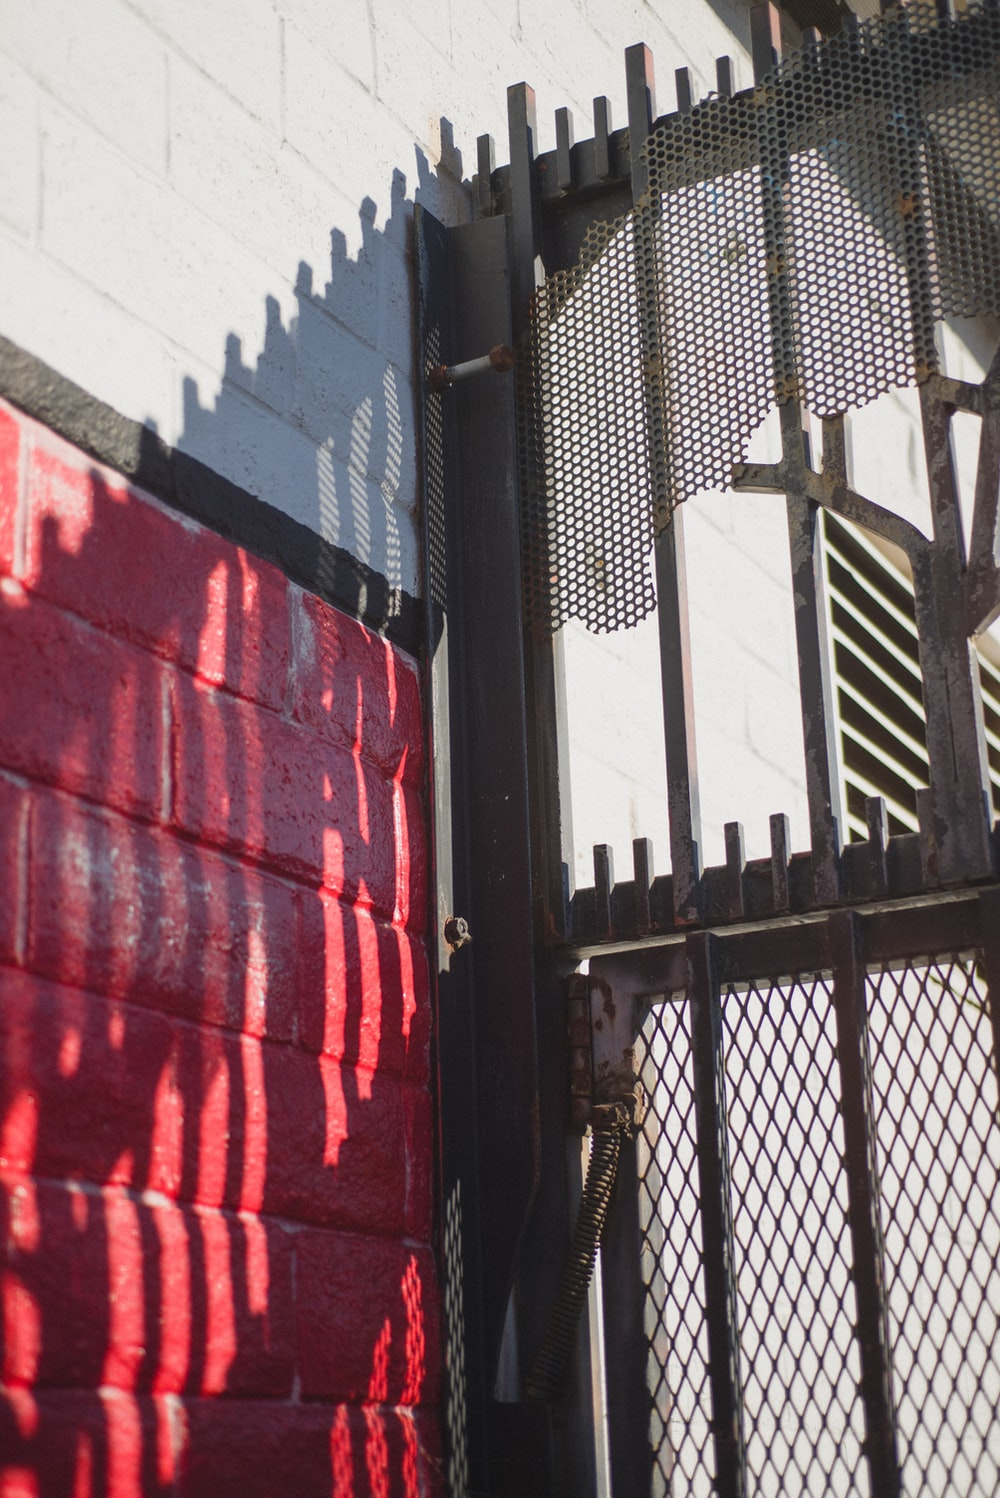 black metal fence near red and white concrete building during daytime